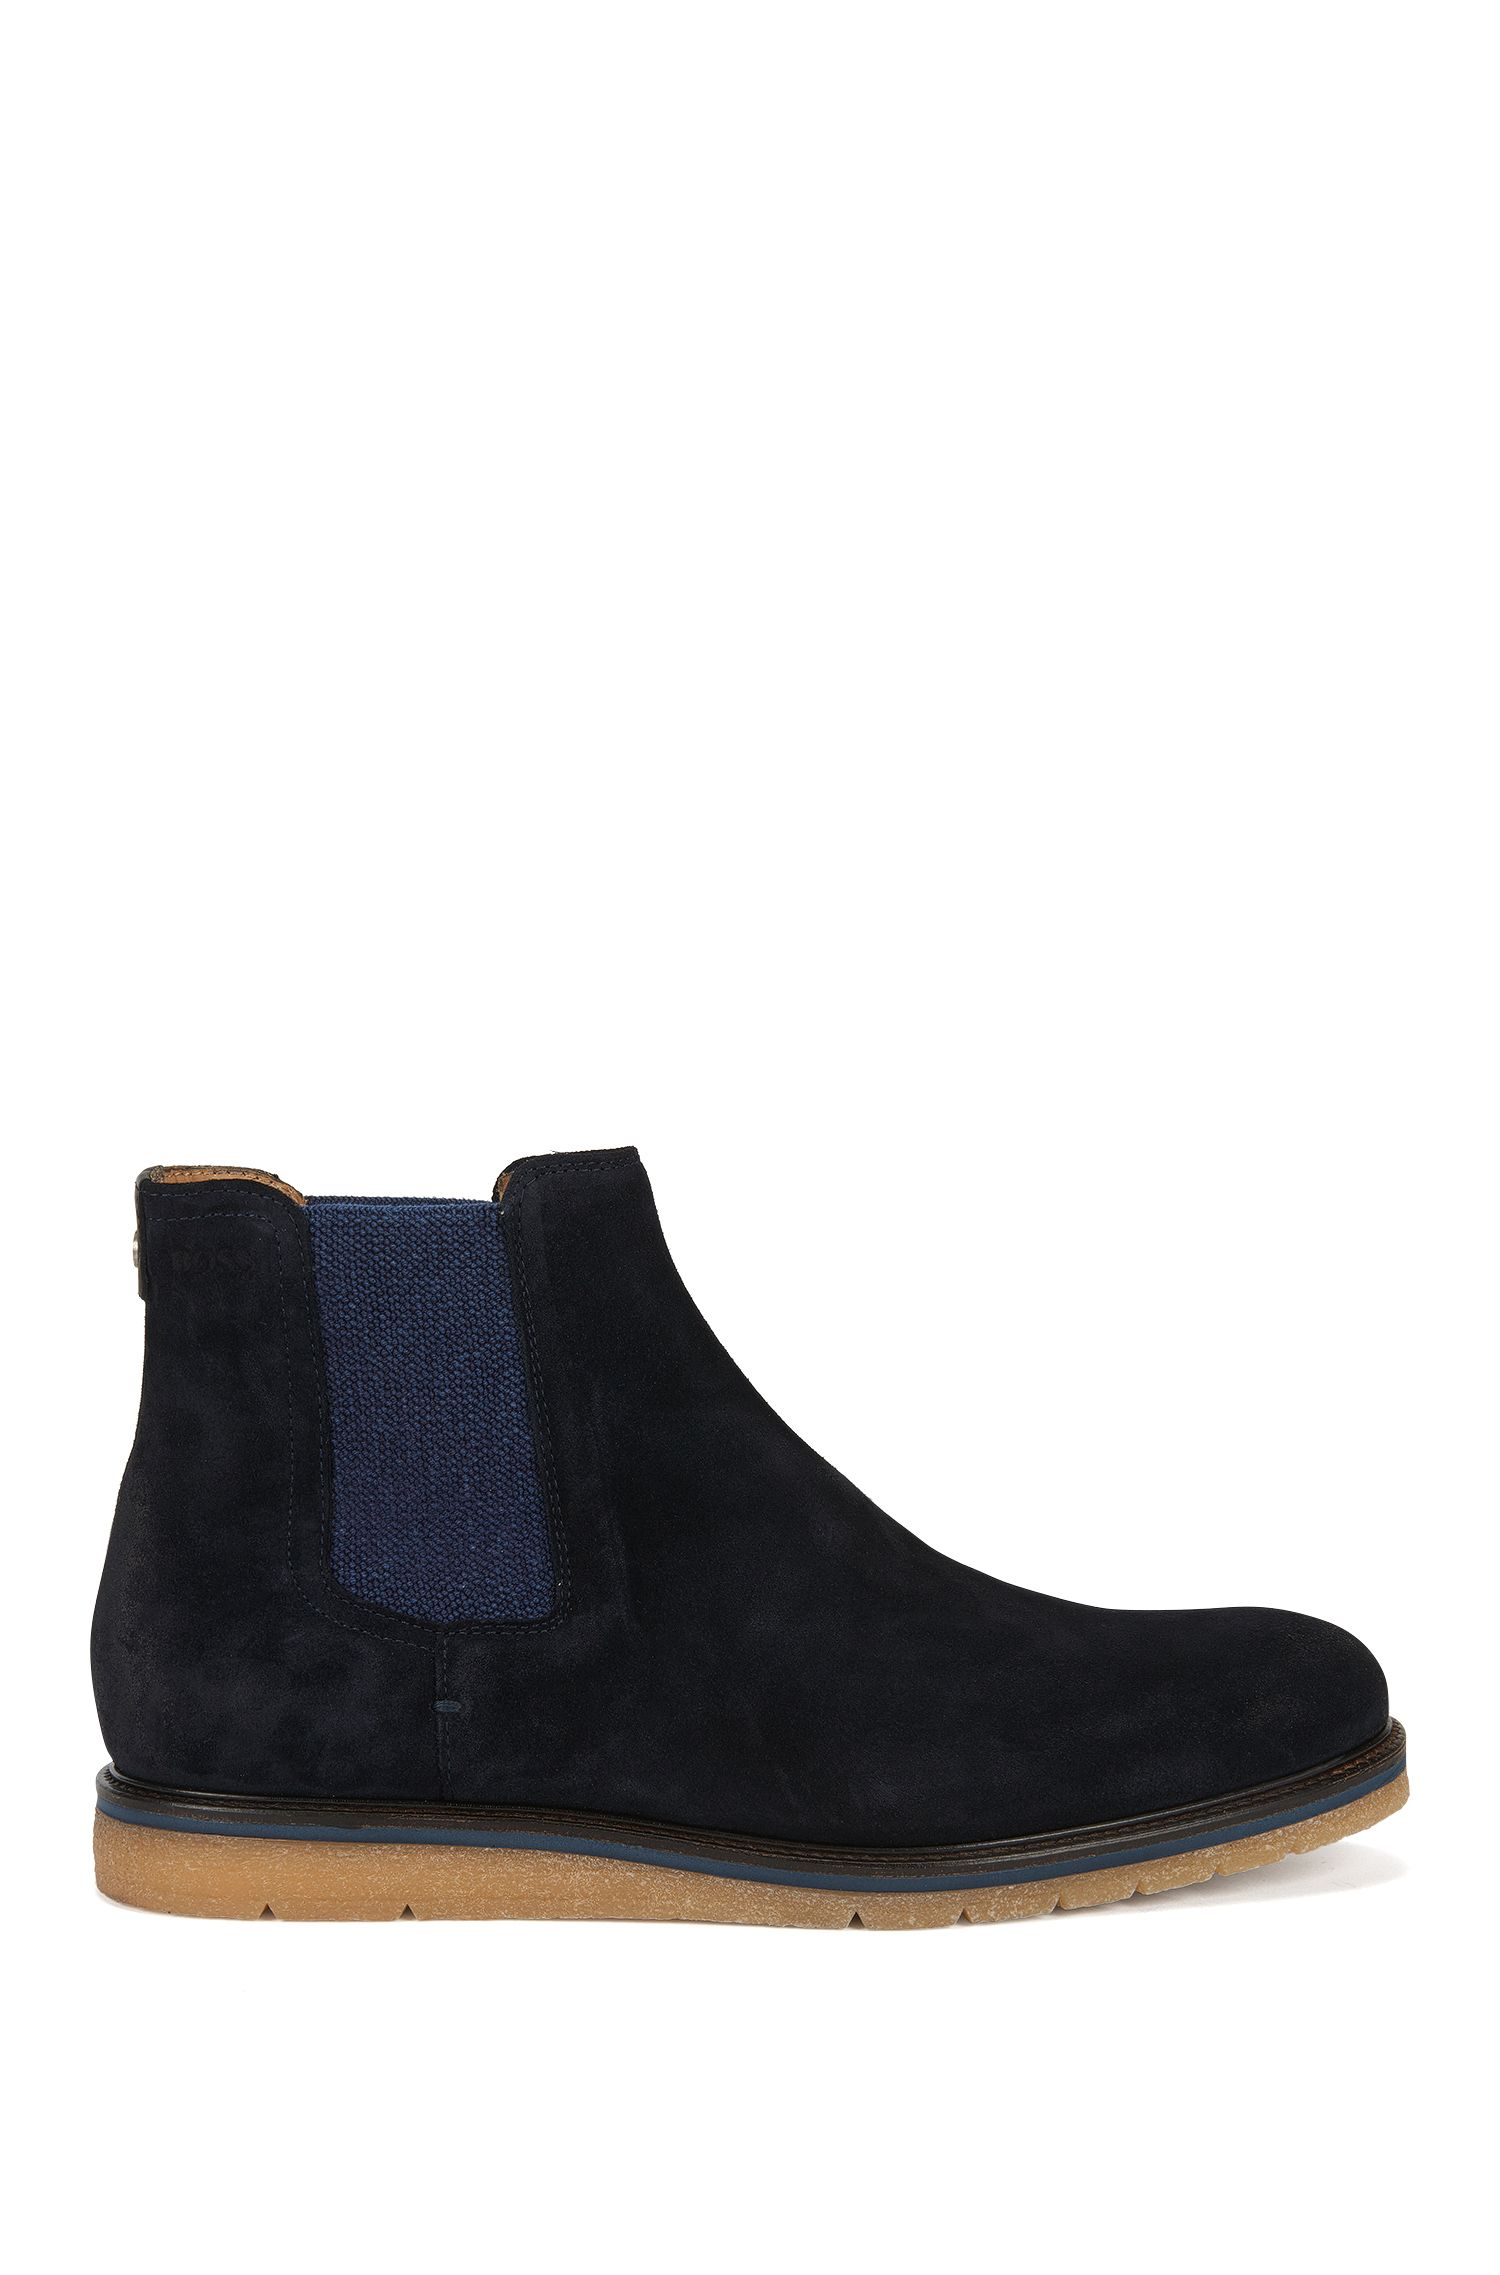 Suede Chelsea boots with wedge sole